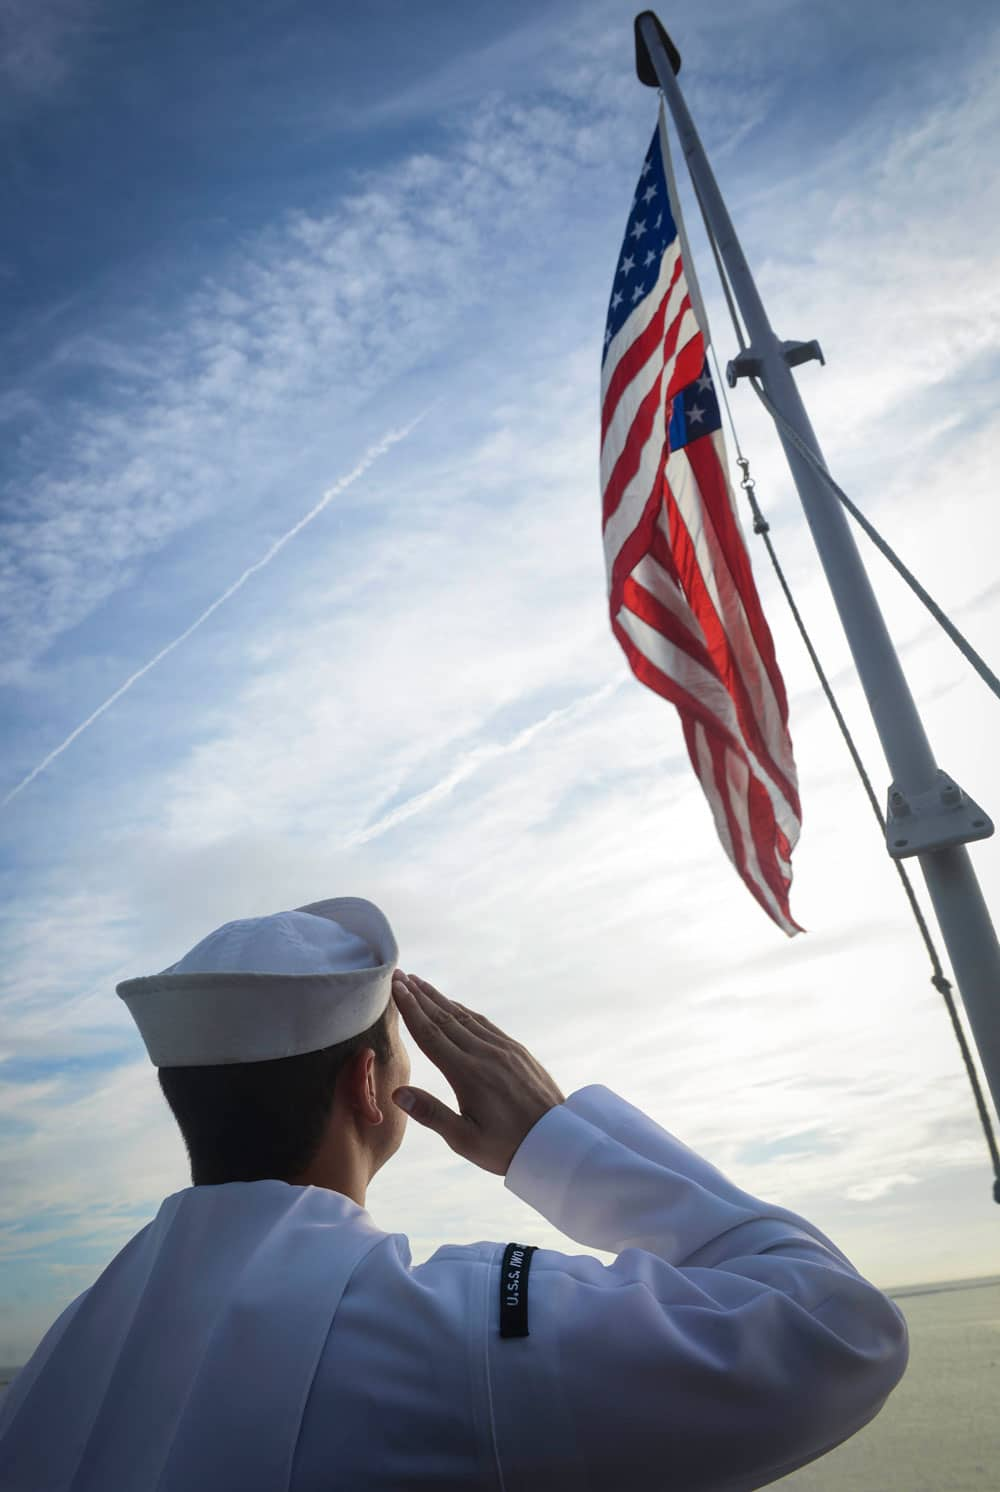 United States Navy Yeoman 3rd Class Zachary Tulley salutes the American flag on the fantail of the amphibious assault ship USS Iwo Jima during morning colors. Iwo Jima is conducting a scheduled continuous maintenance availability in preparation for their upcoming deployment.